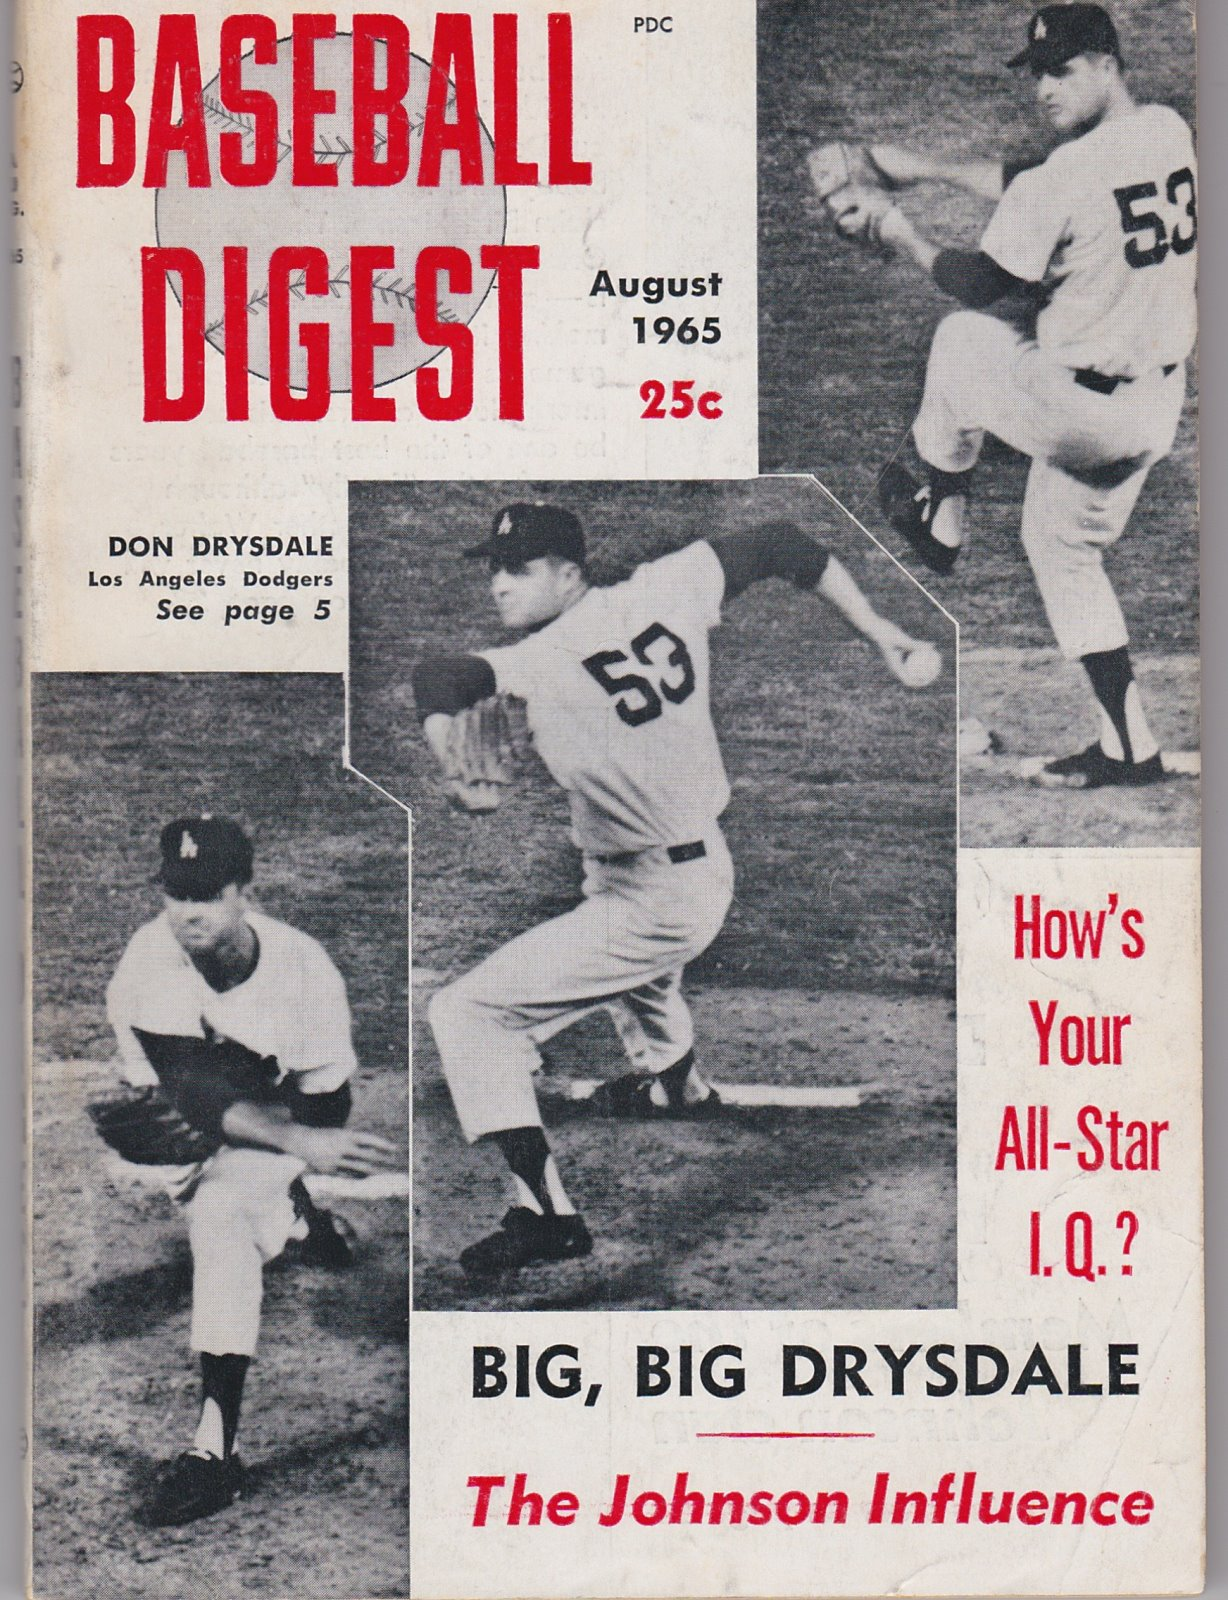 Baseball Digest Baseball's Monthly Magazine August, 1965